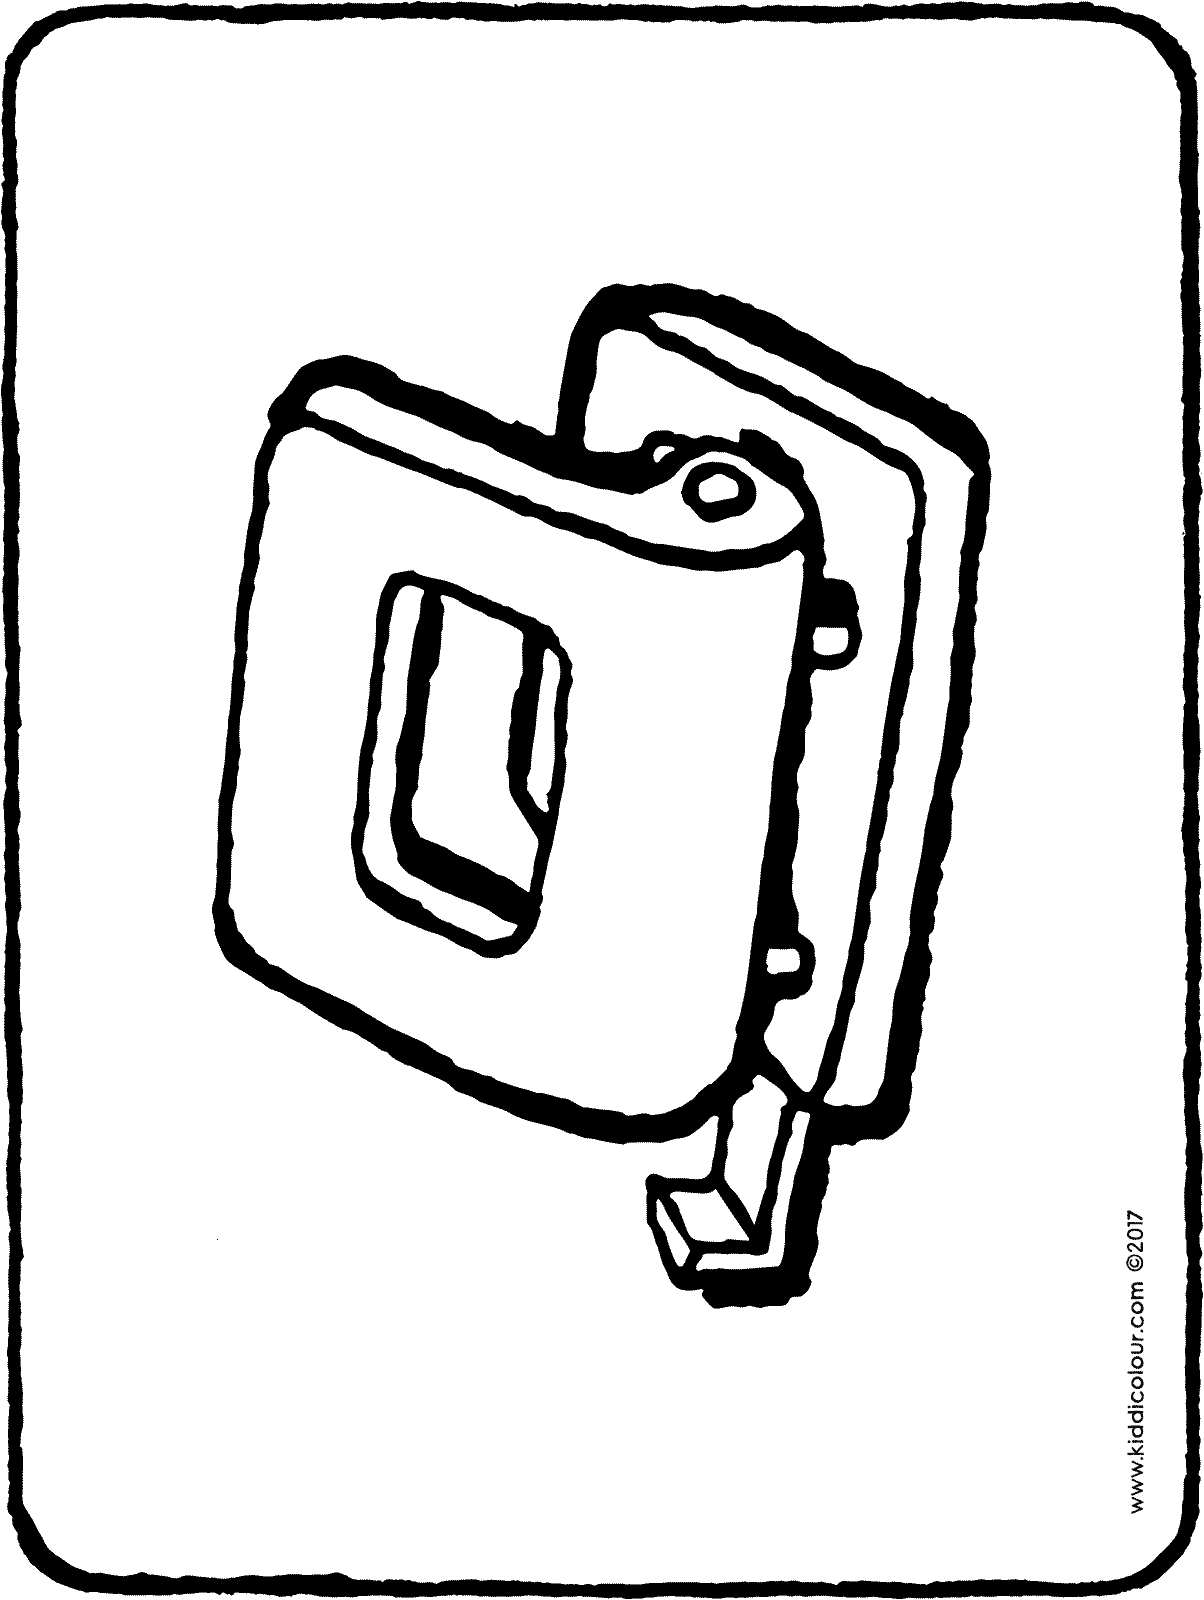 hole punch colouring page drawing picture 01H